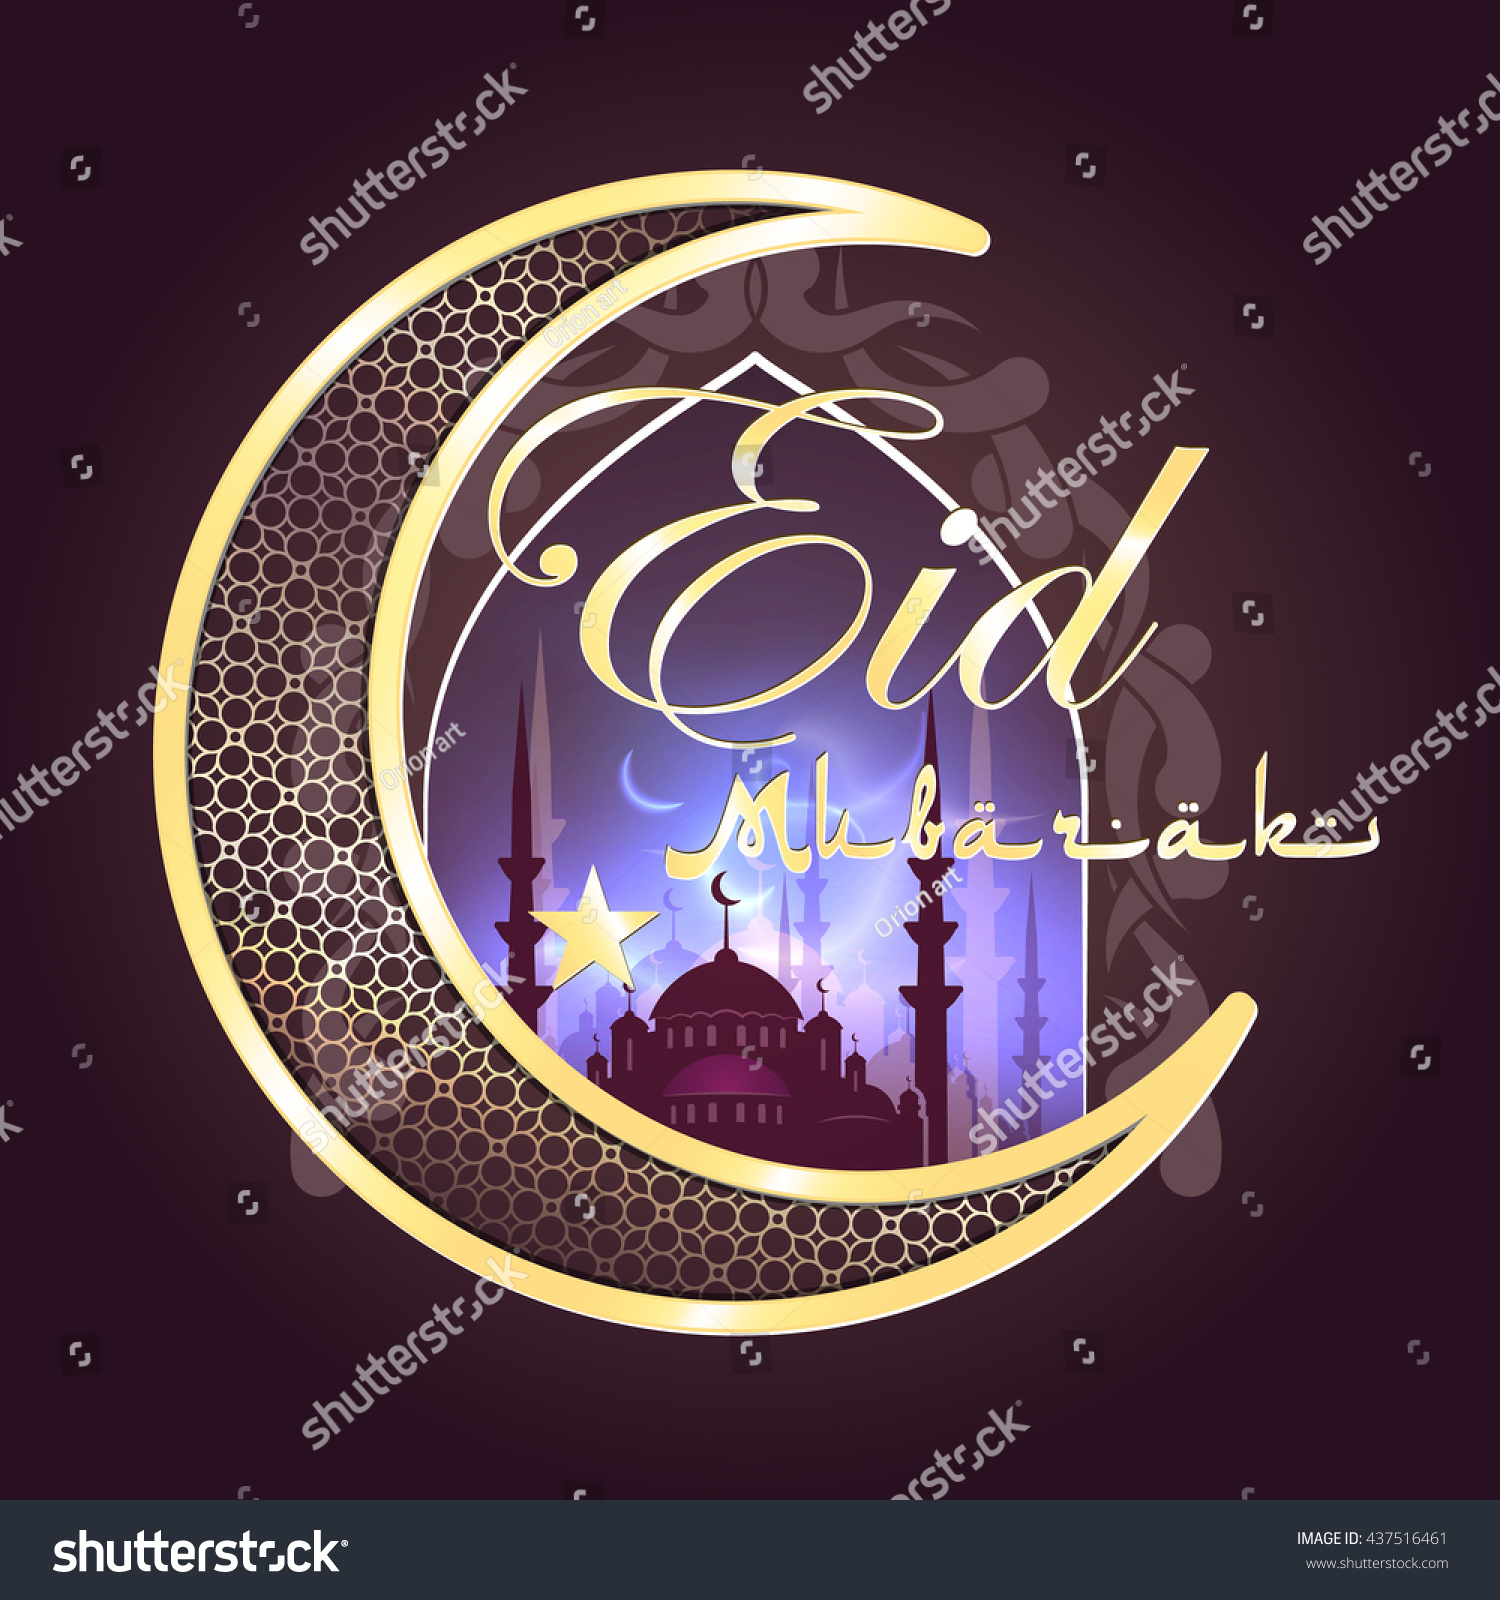 Download Idd Eid Al-Fitr Feast - stock-photo-calligraphy-of-arabic-text-eid-al-fitr-feast-of-breaking-the-fast-holiday-greeting-card-in-437516461  Collection_621918 .jpg